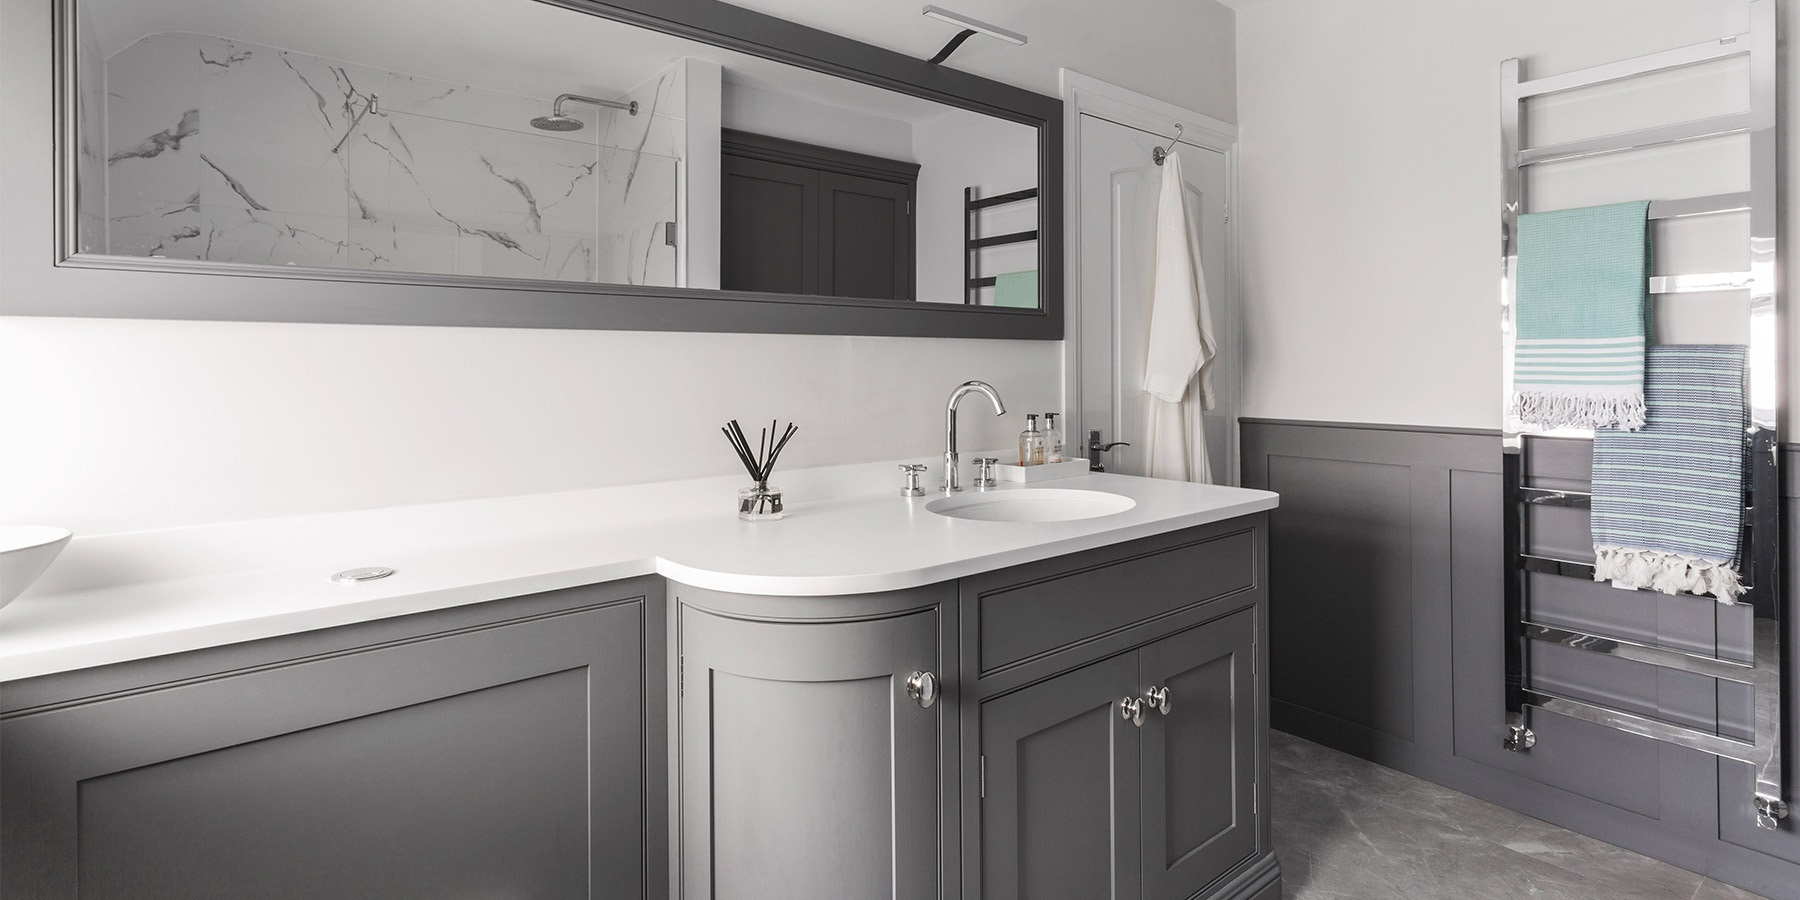 Bespoke Bathroom Vanity  - Burlanes handmade grey bathroom furniture with curved vanity and storage solutions.